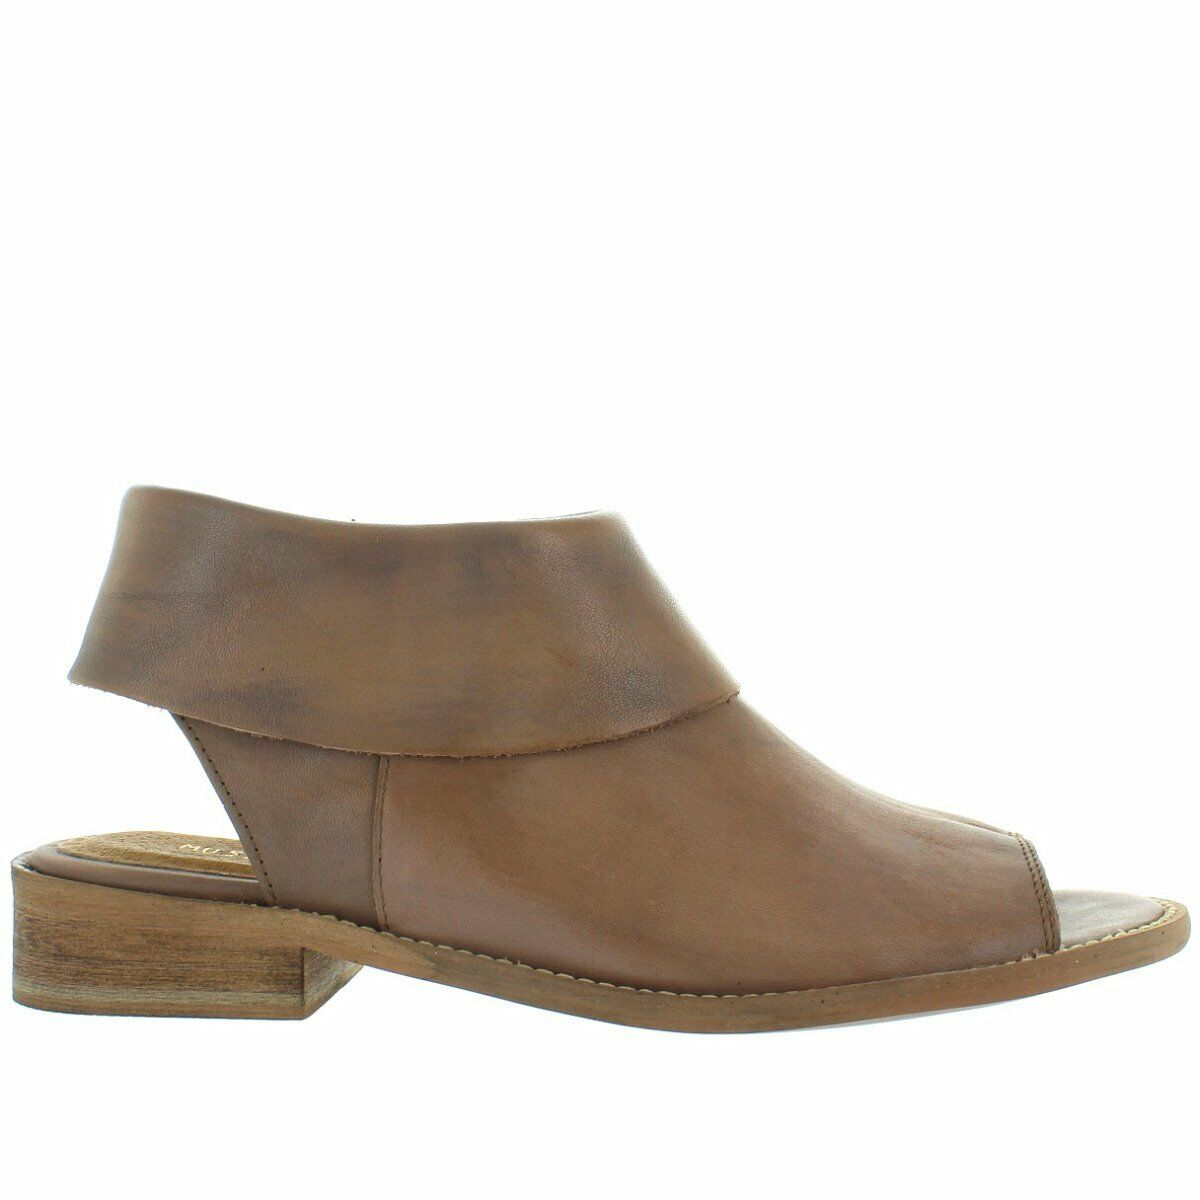 Musse & Cloud Anemone - Taupe Brown Sandal Bootie